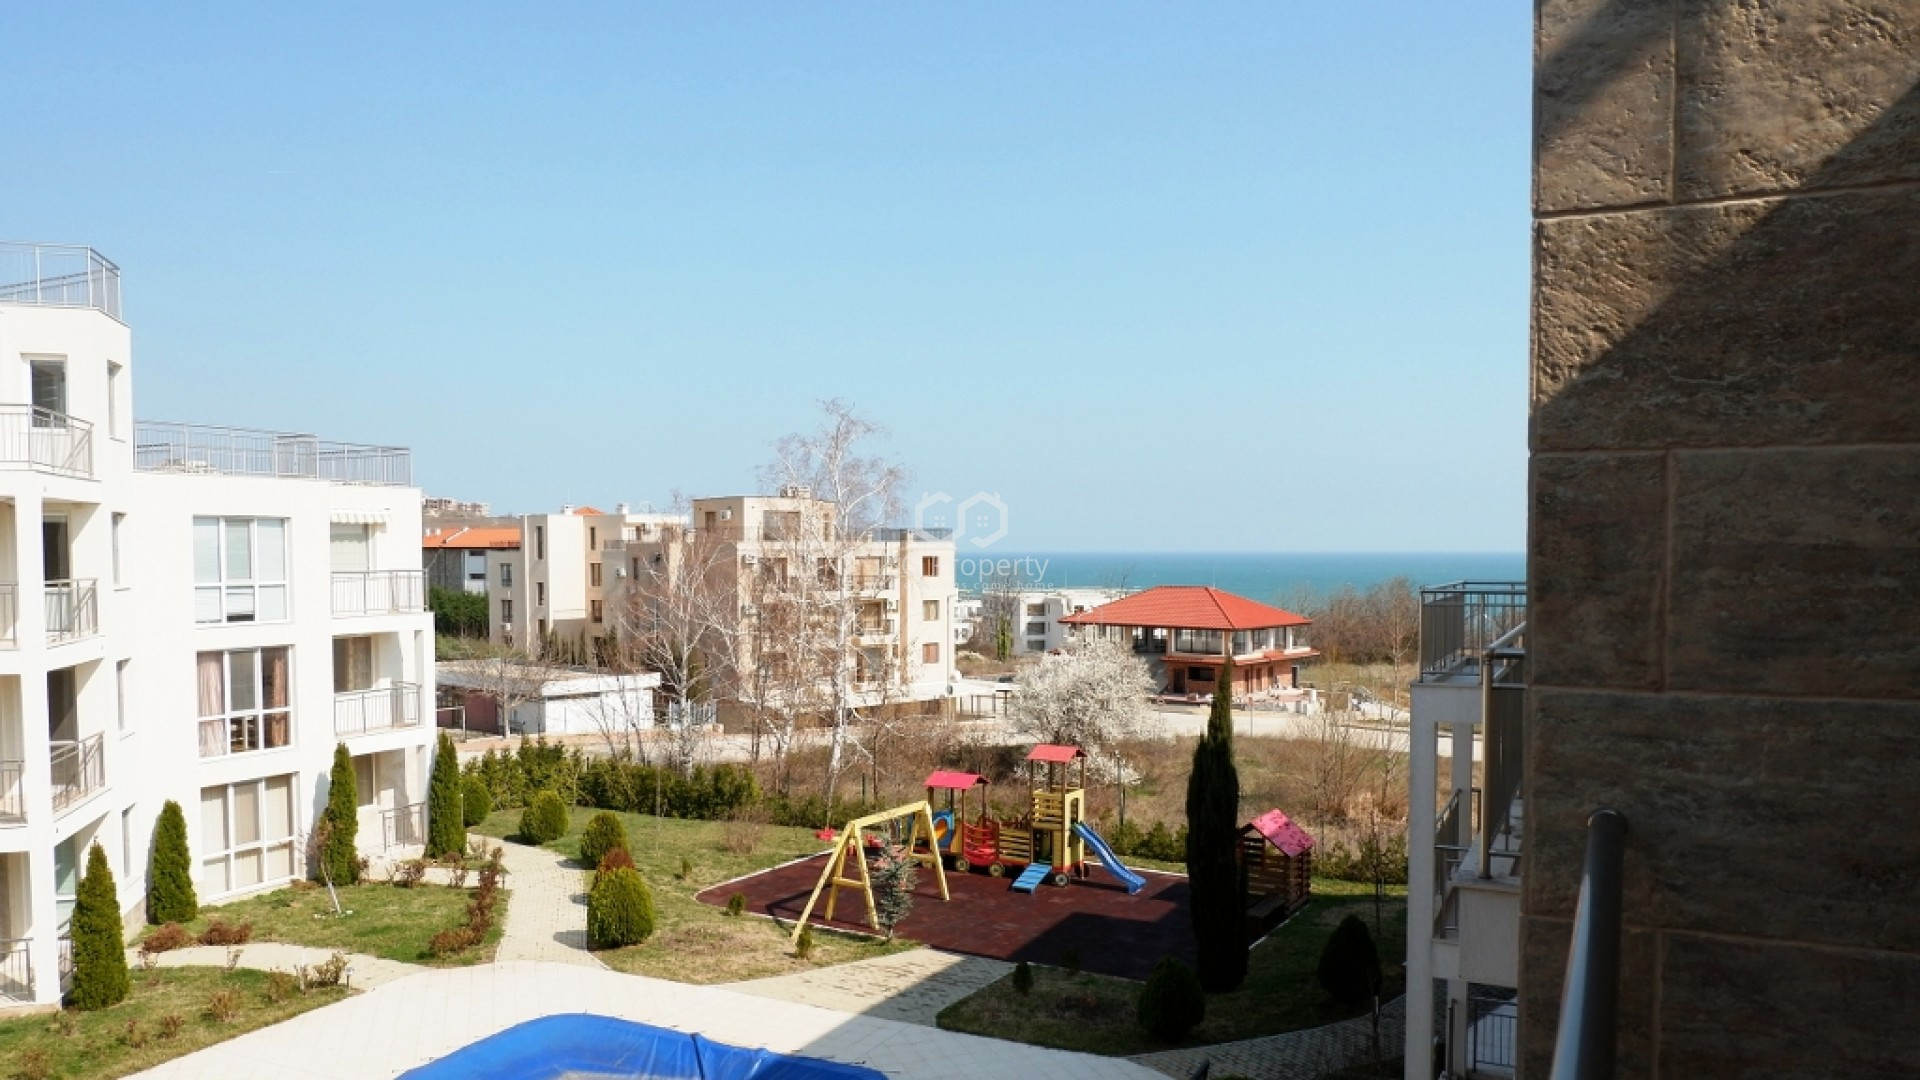 EXCLUSIVE OFFER! One bedroom apartment Byala 56,37 m2